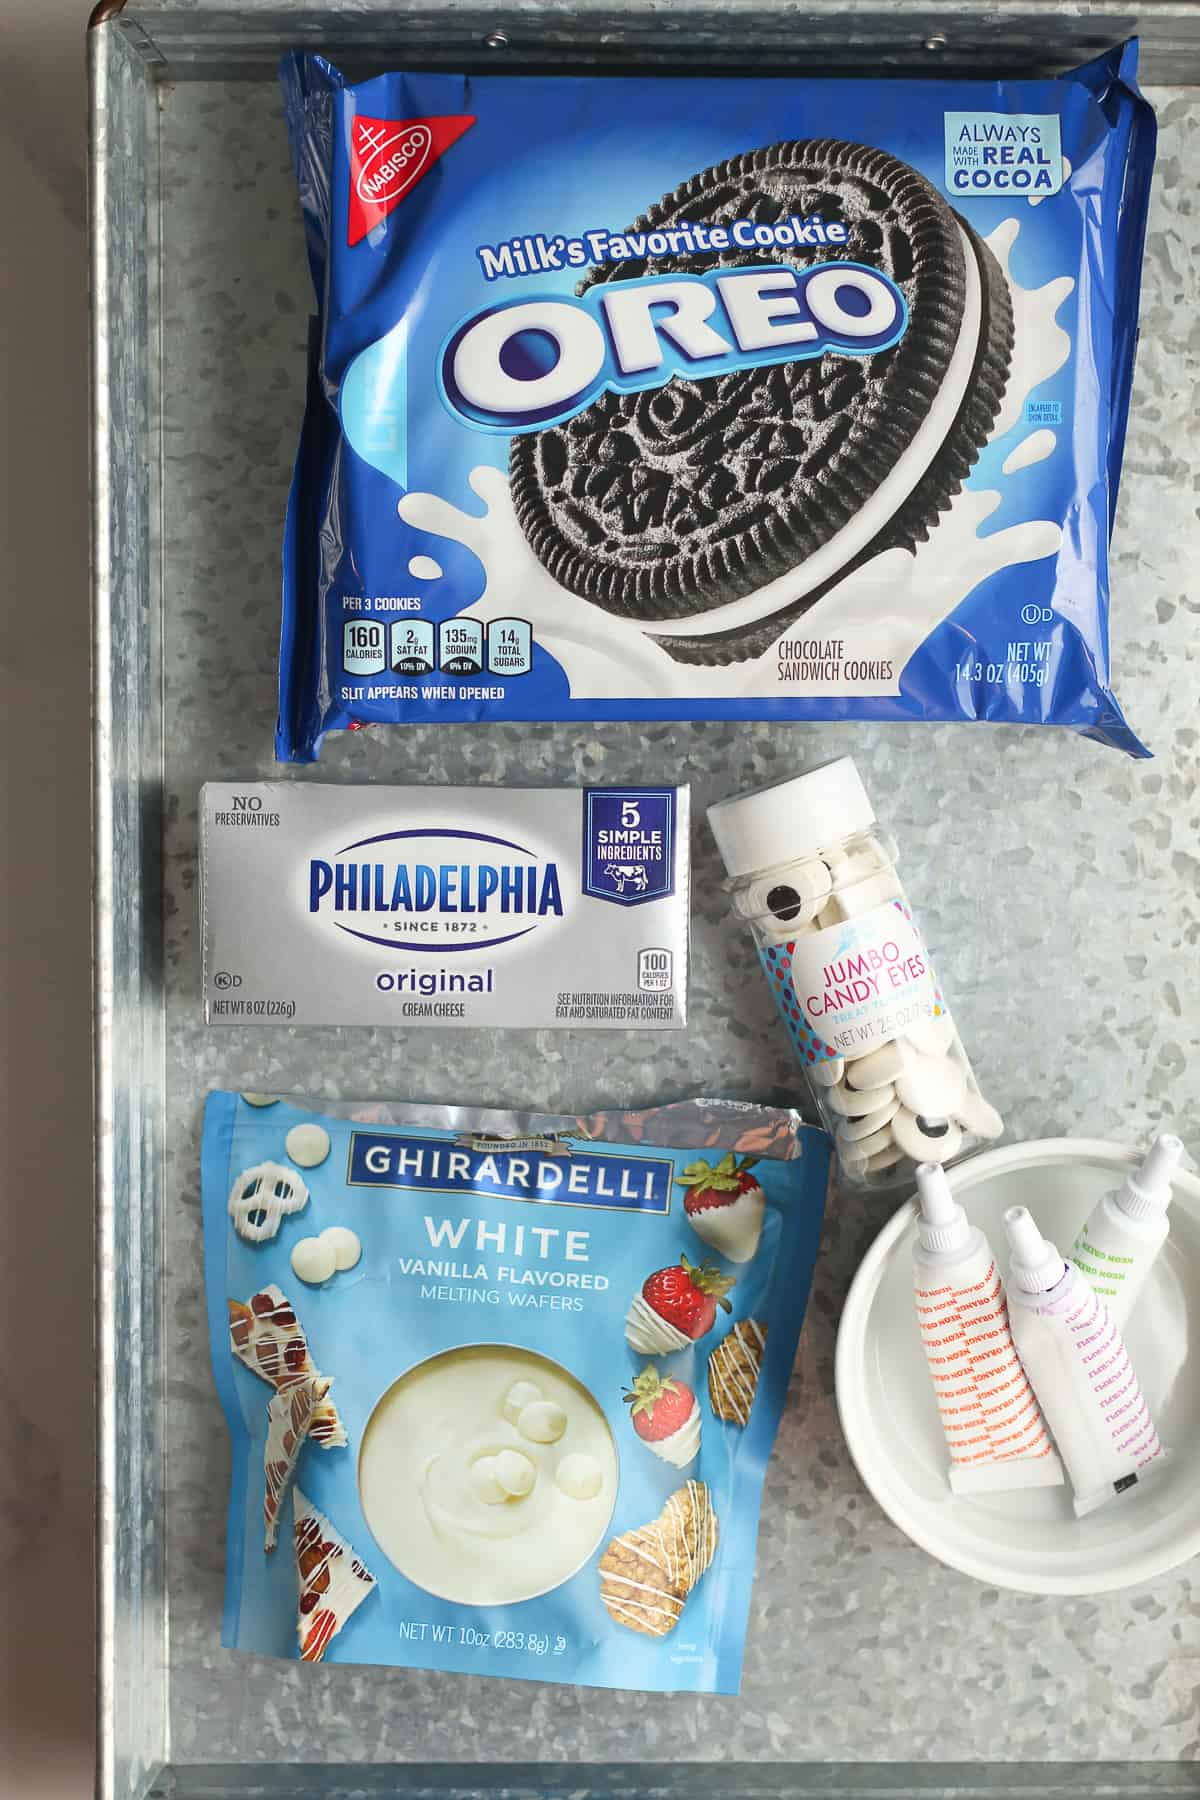 A tray with the Oreo Cookie Eyeball ingredients.